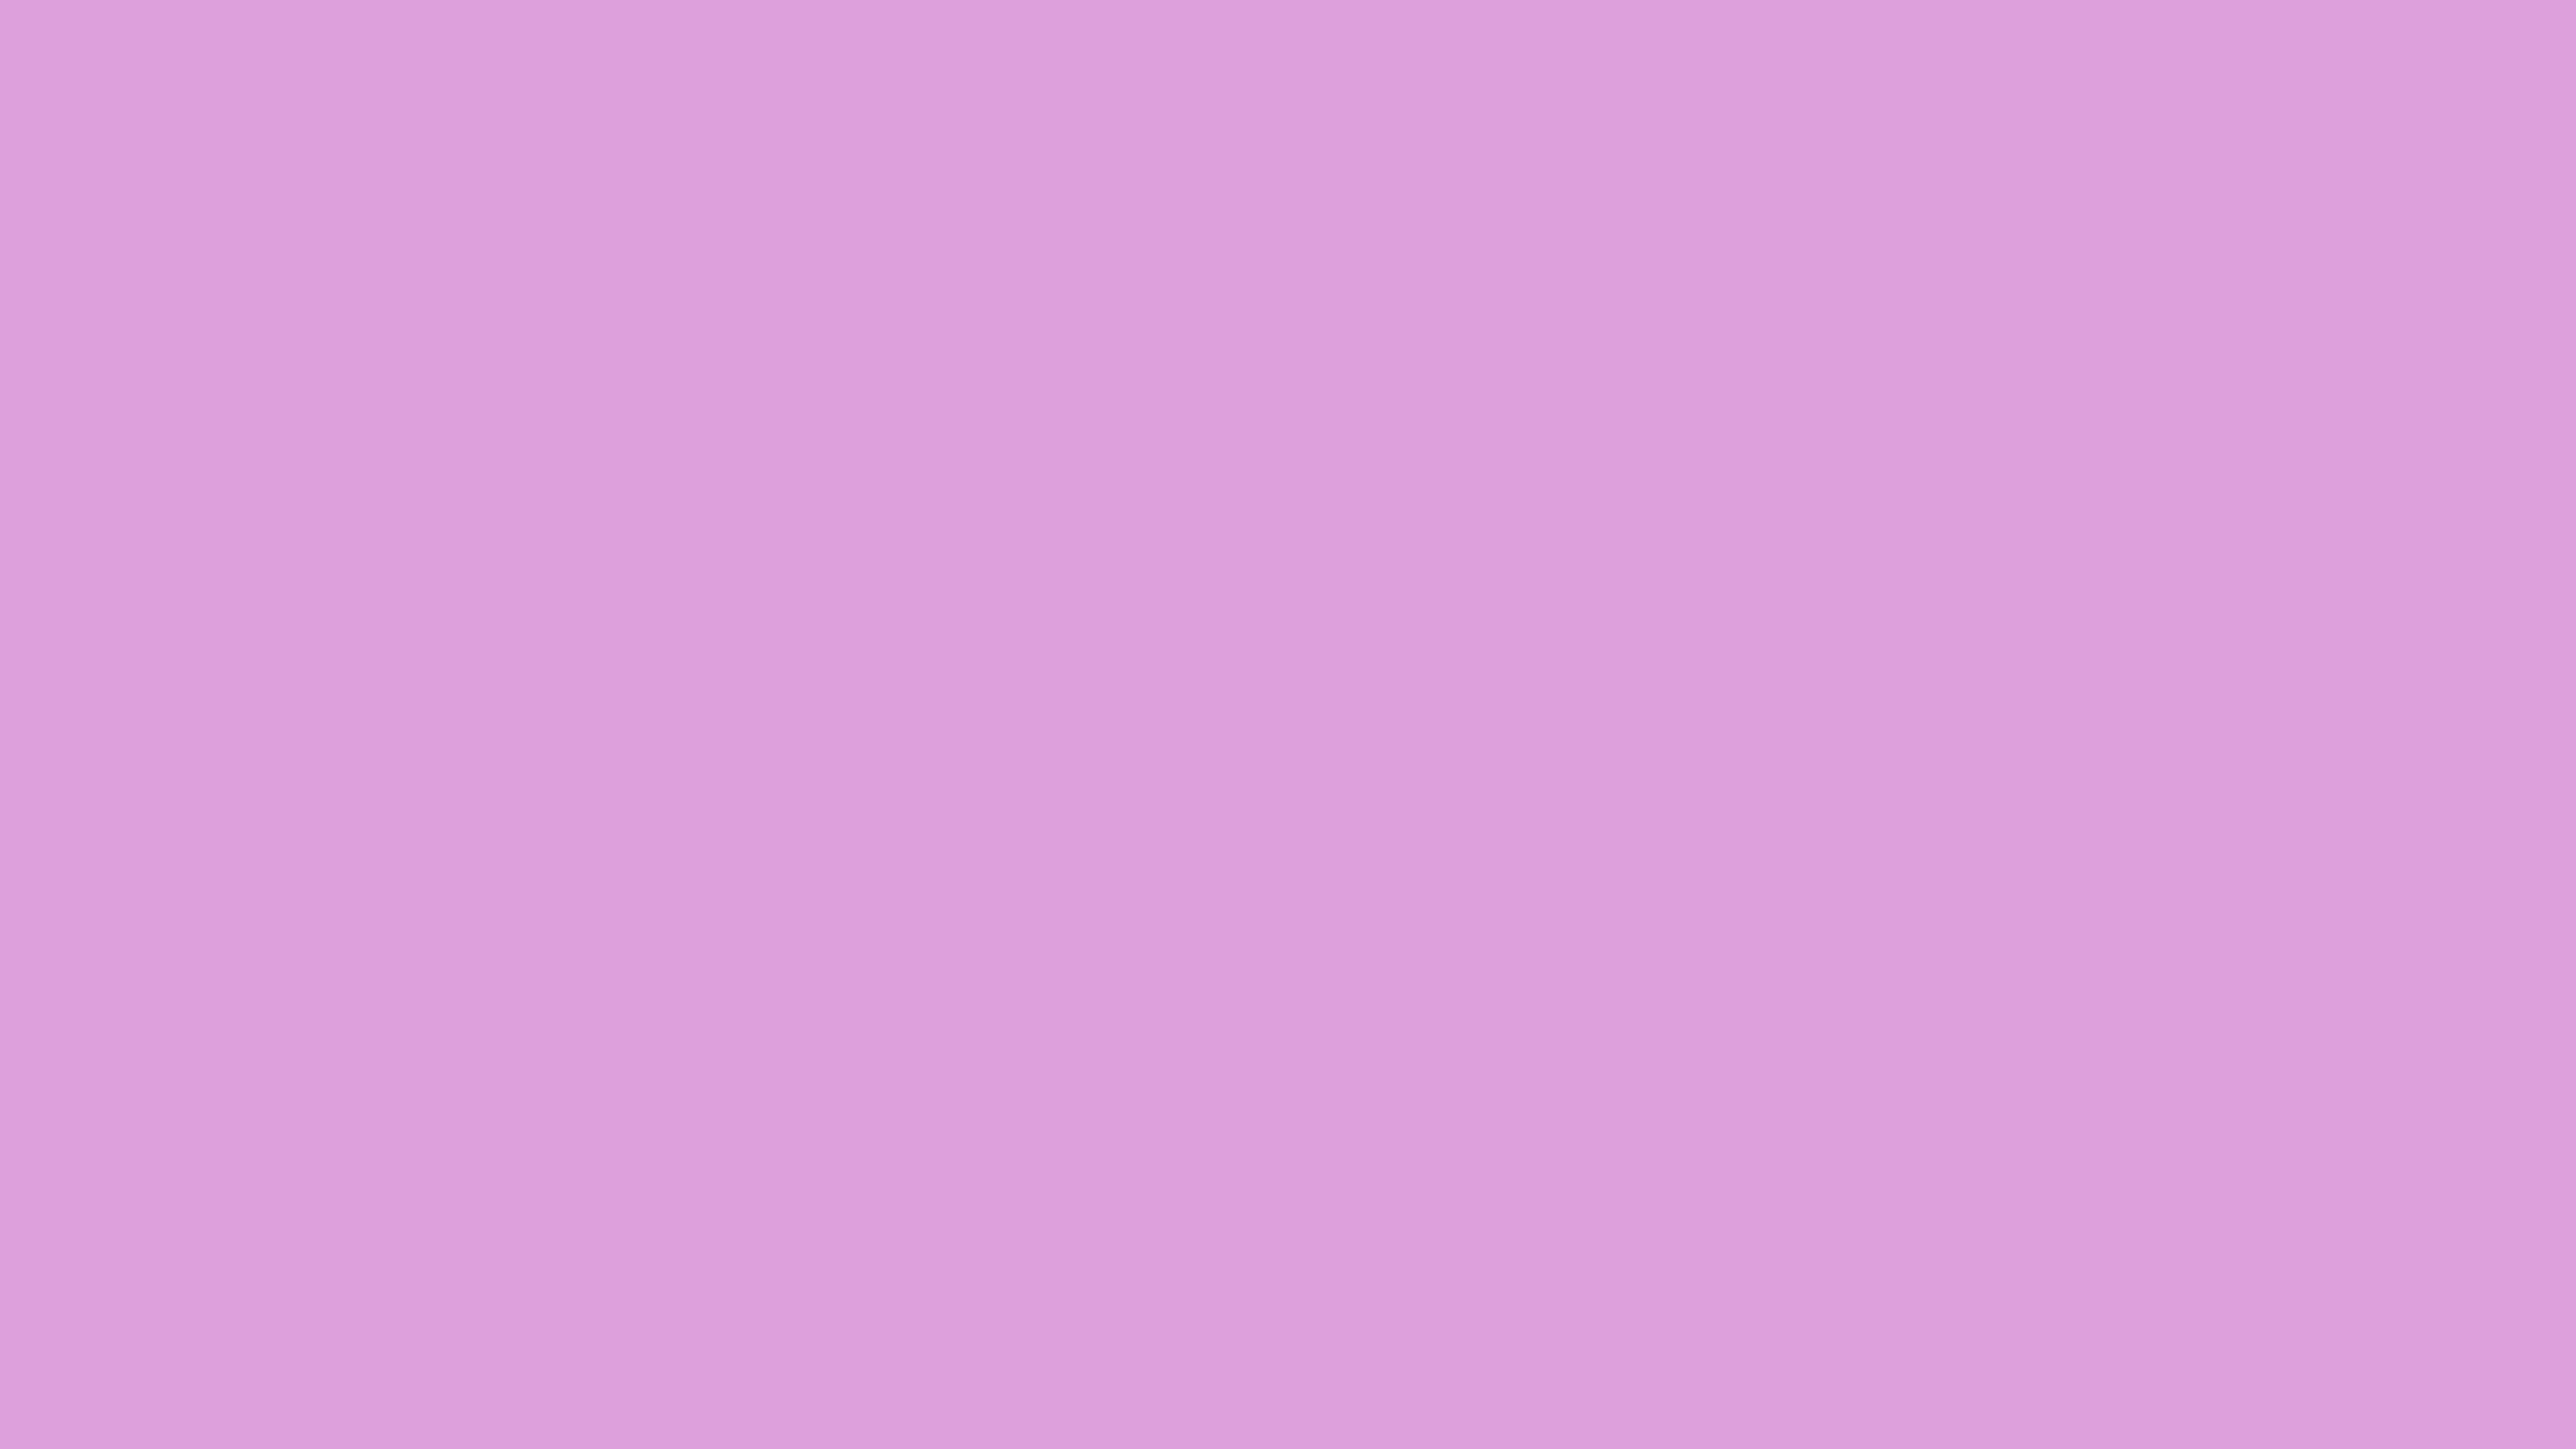 5120x2880 Pale Plum Solid Color Background